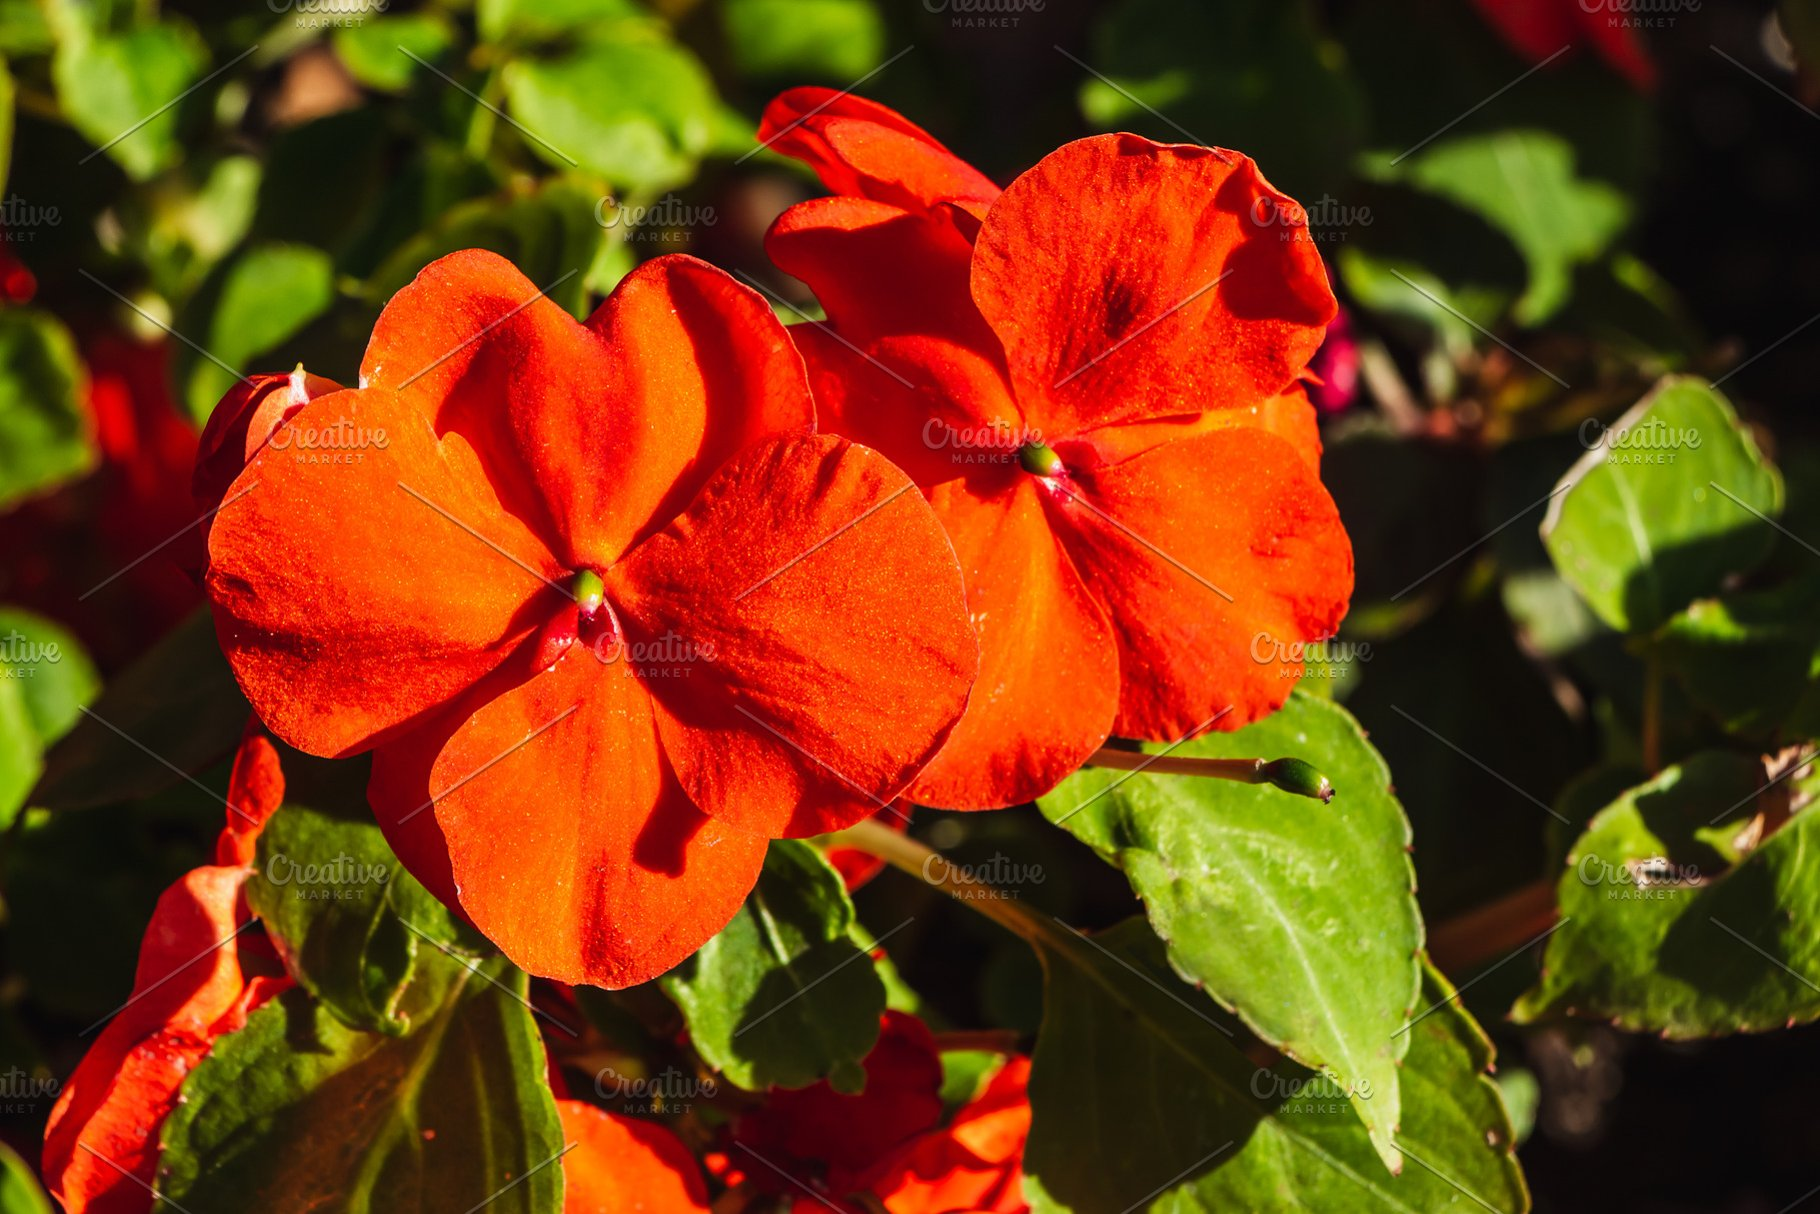 Balsamine Or New Guinea Impatiens Re High Quality Nature Stock